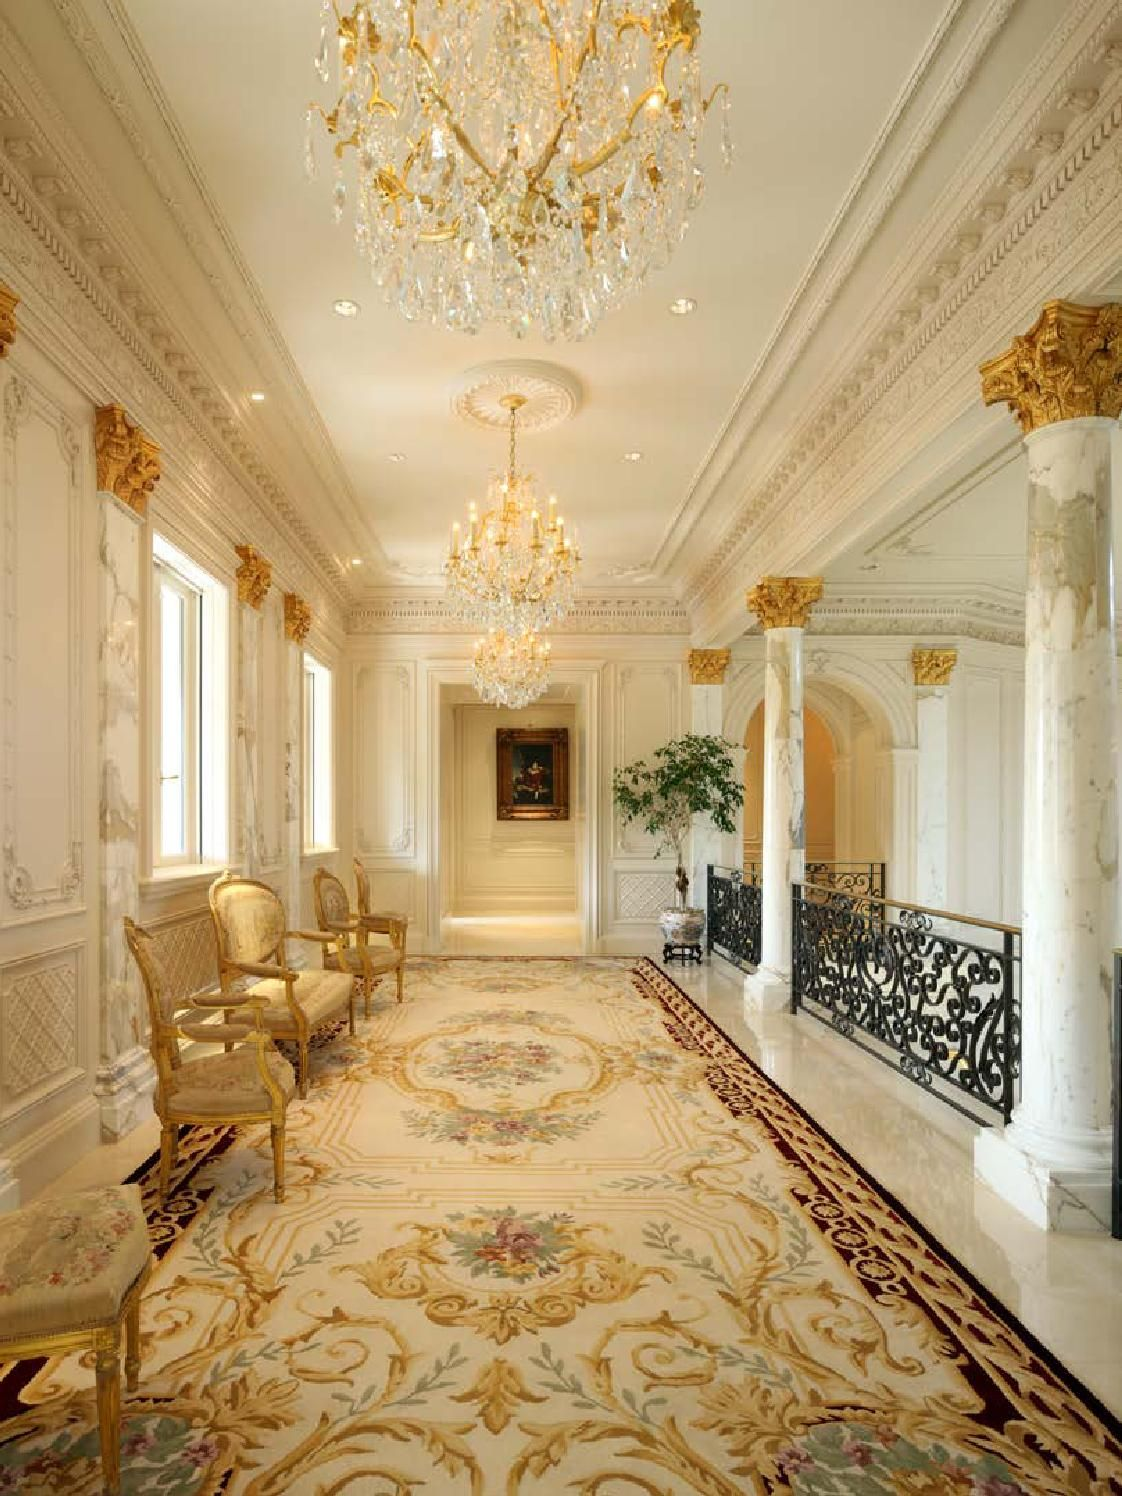 European Neo-classical Style II | Mansion interior, Luxury ...